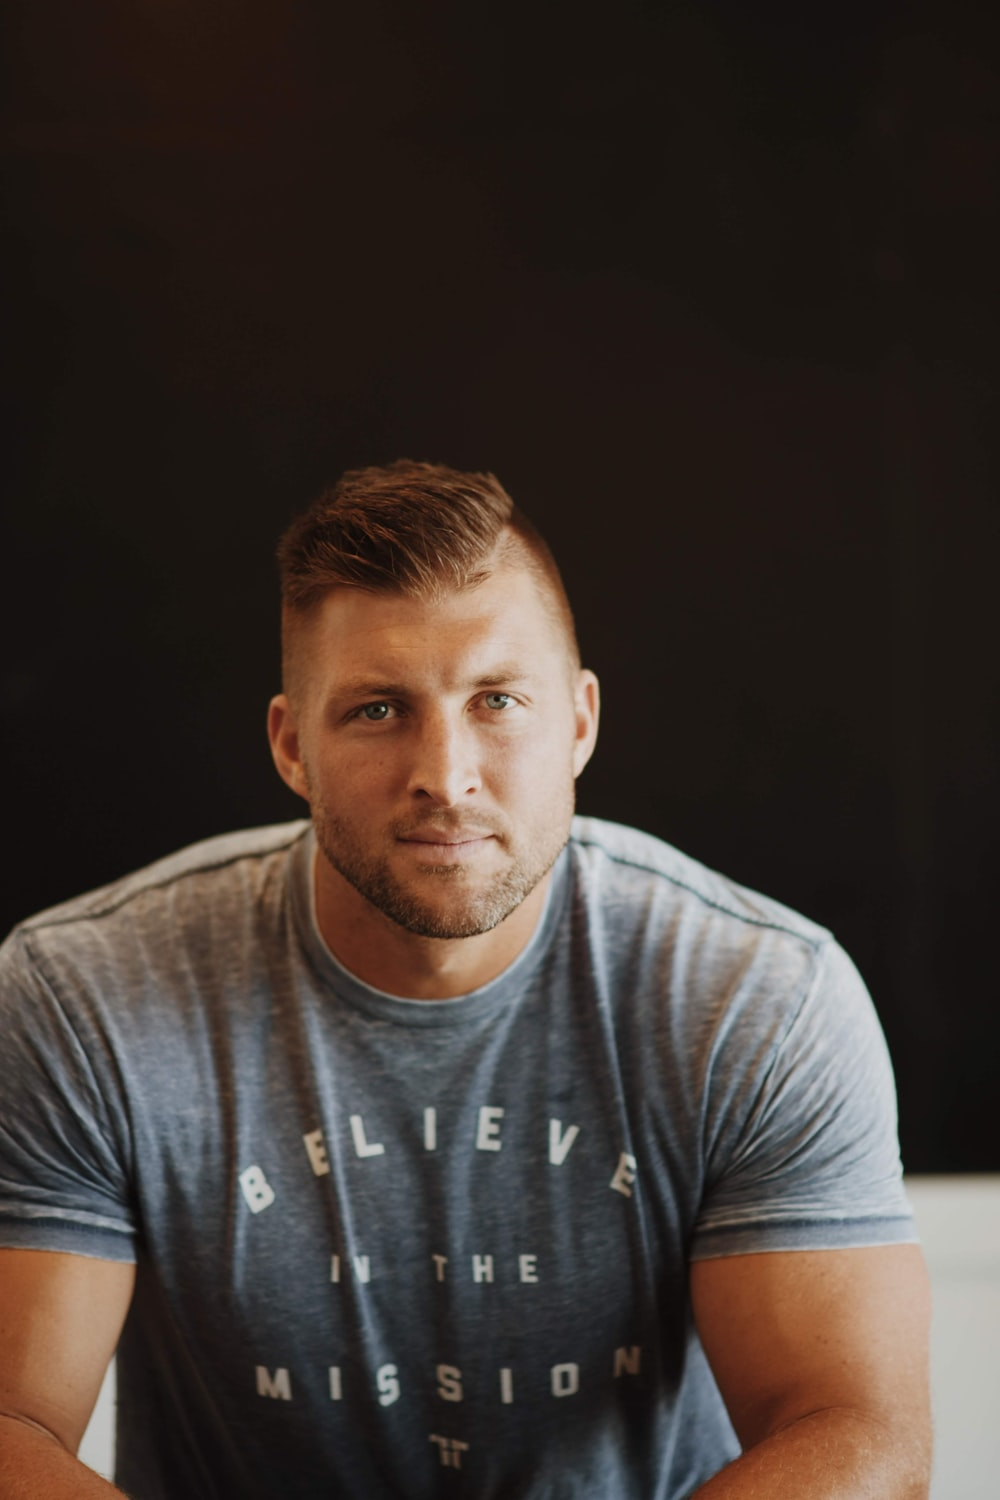 Tim Tebow in a gray crew neck t-shirt